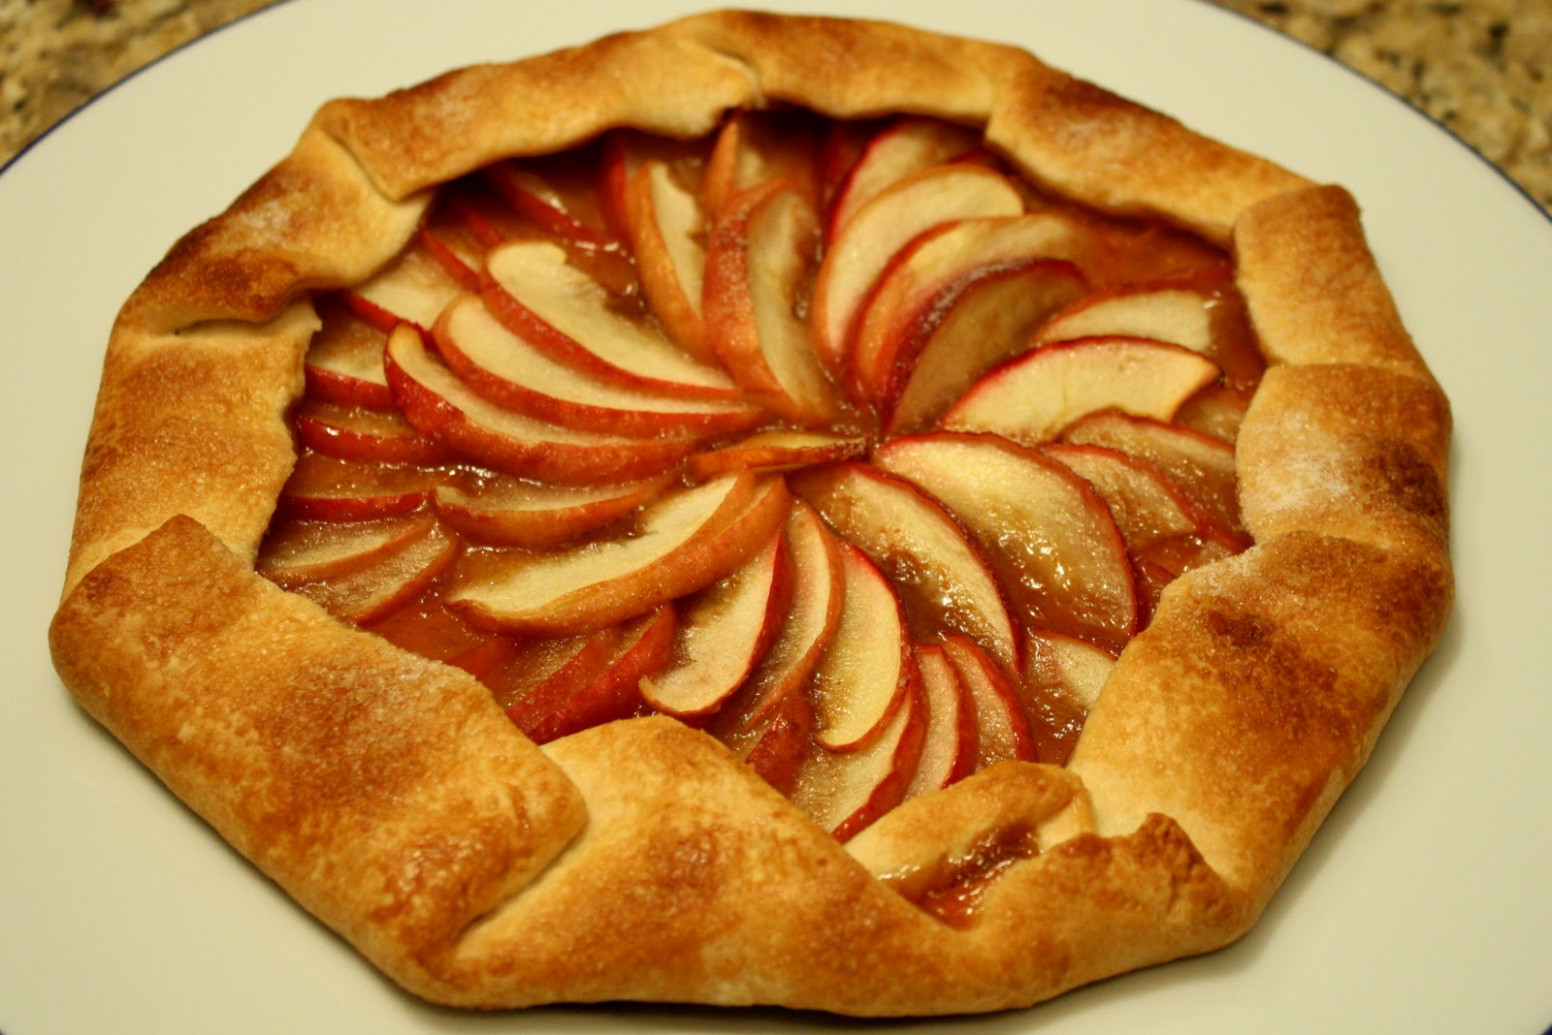 Guilt Free Caramel Apple Pie Tart - WallFoods - healthy recipes using apples